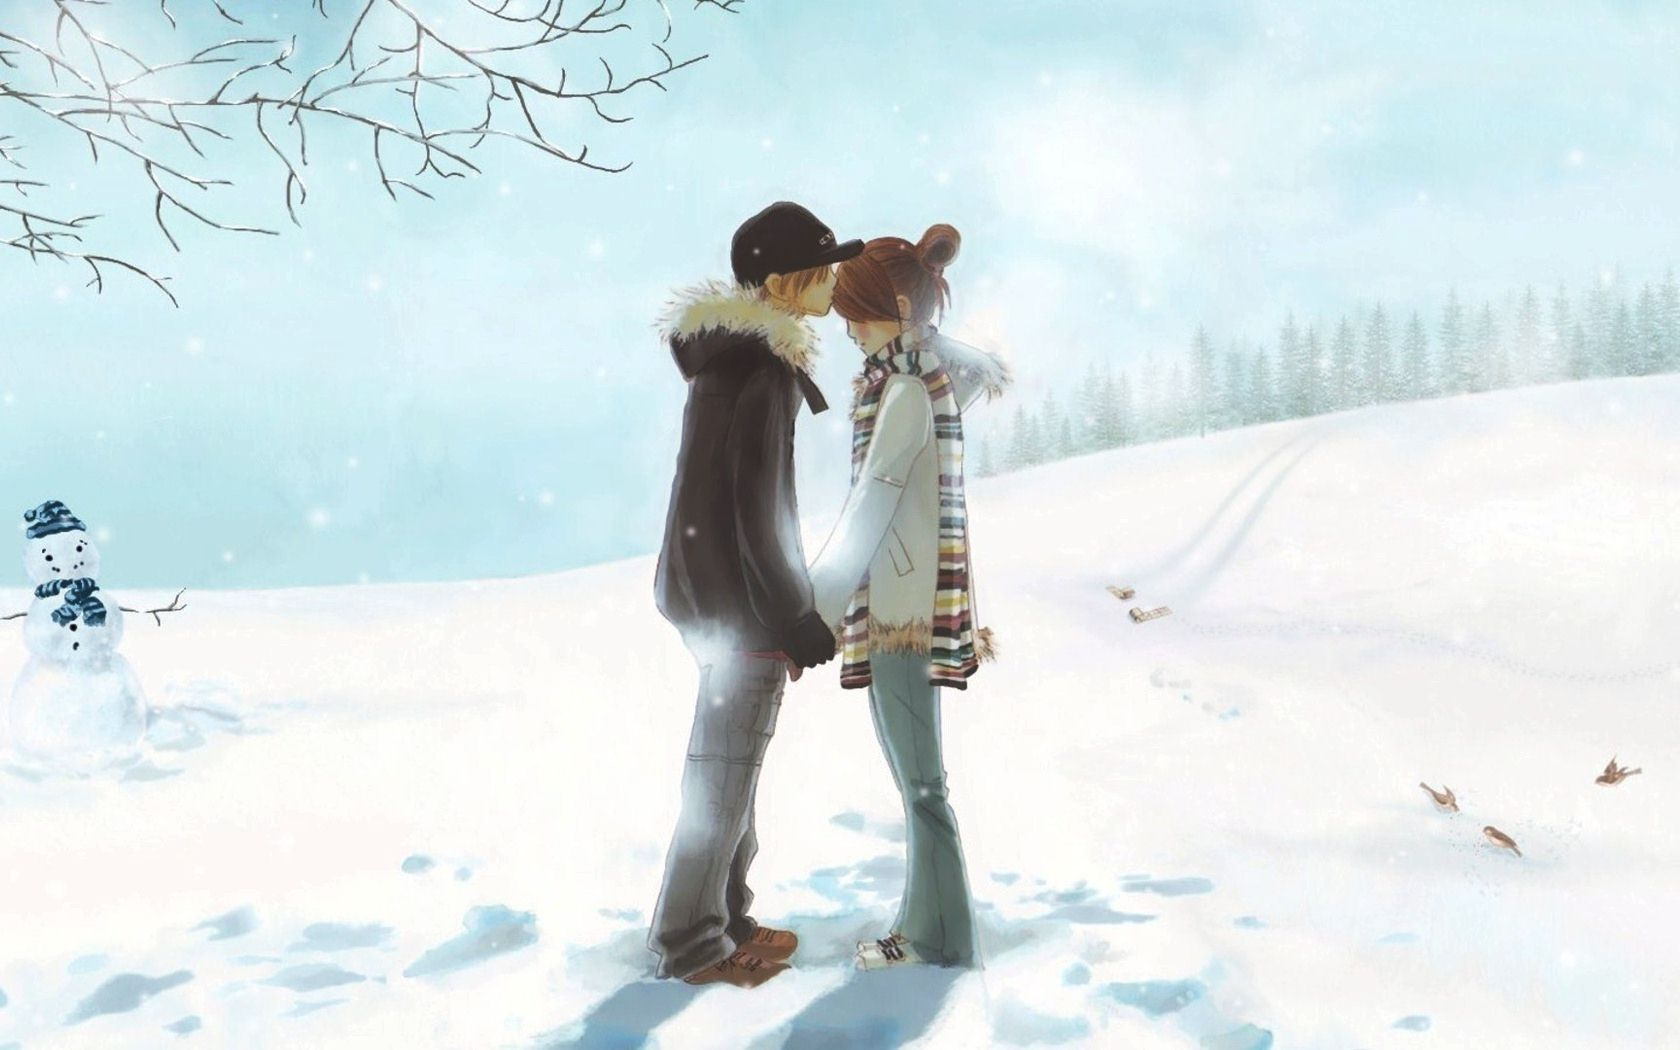 Love couple Animated Wallpaper Hd : cute Love Anime 5 Hd Wallpaper - Hdlovewall.com